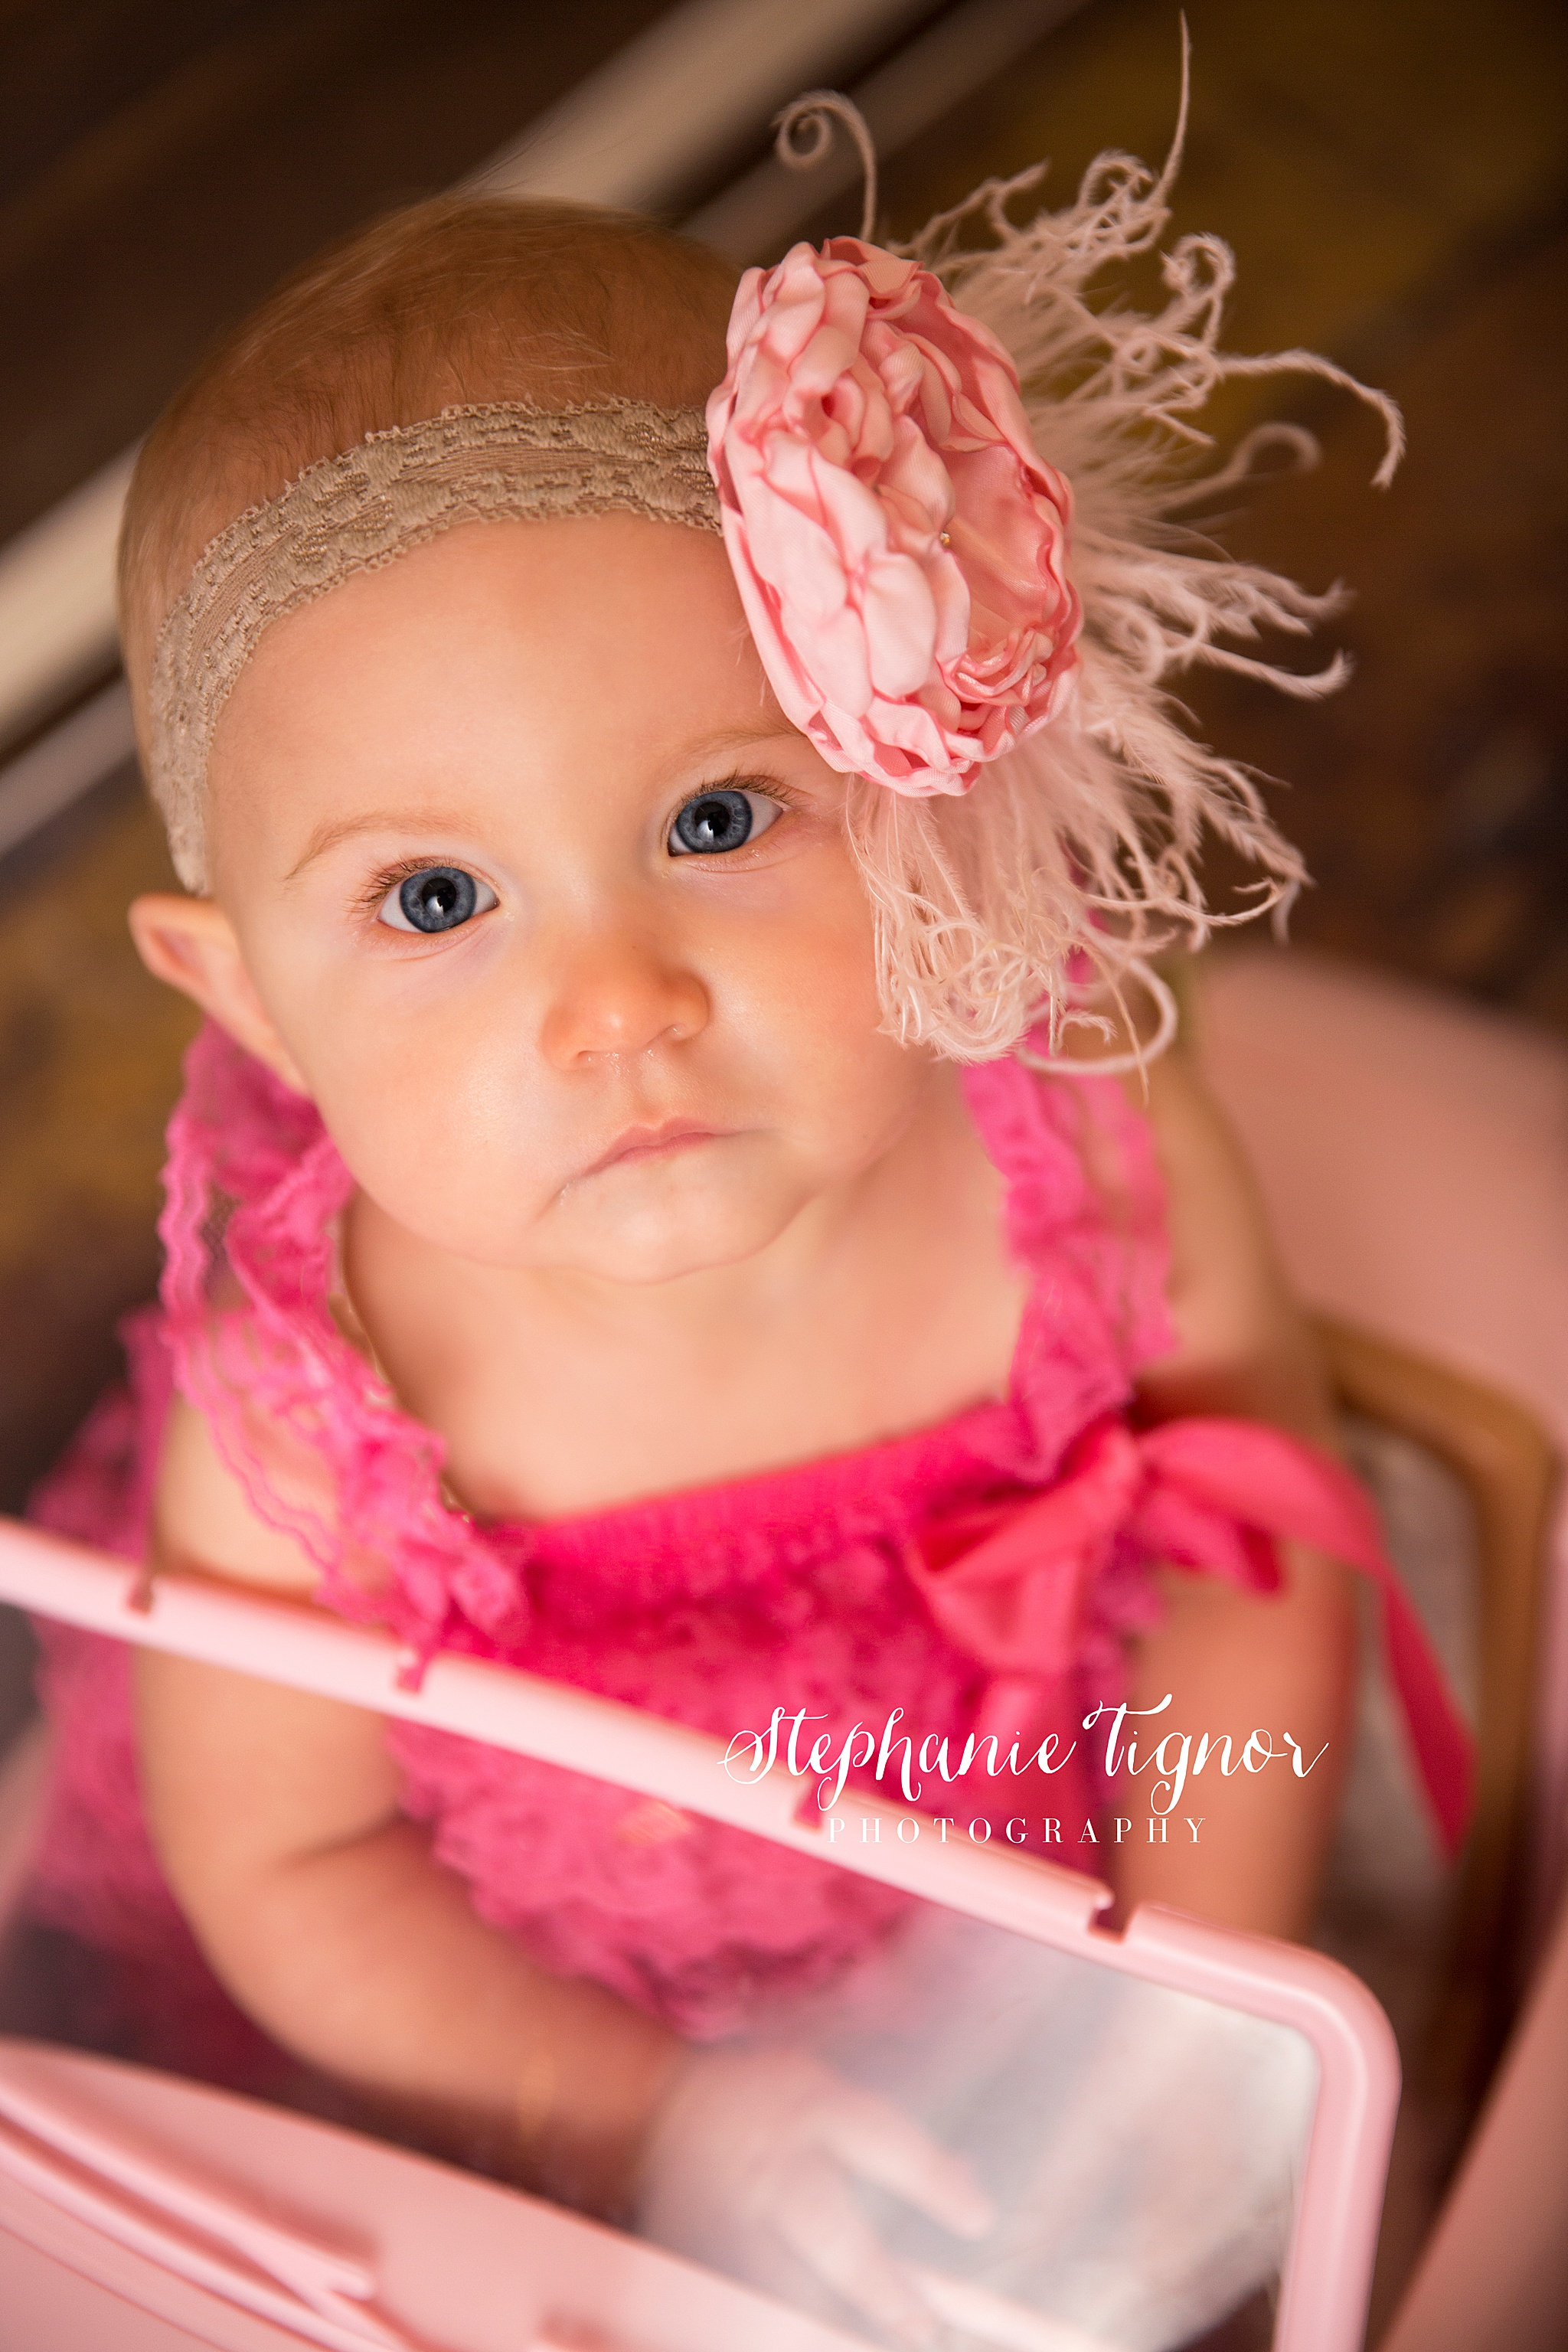 Stephanie Tignor Photography_Cake Smash_0083.jpg